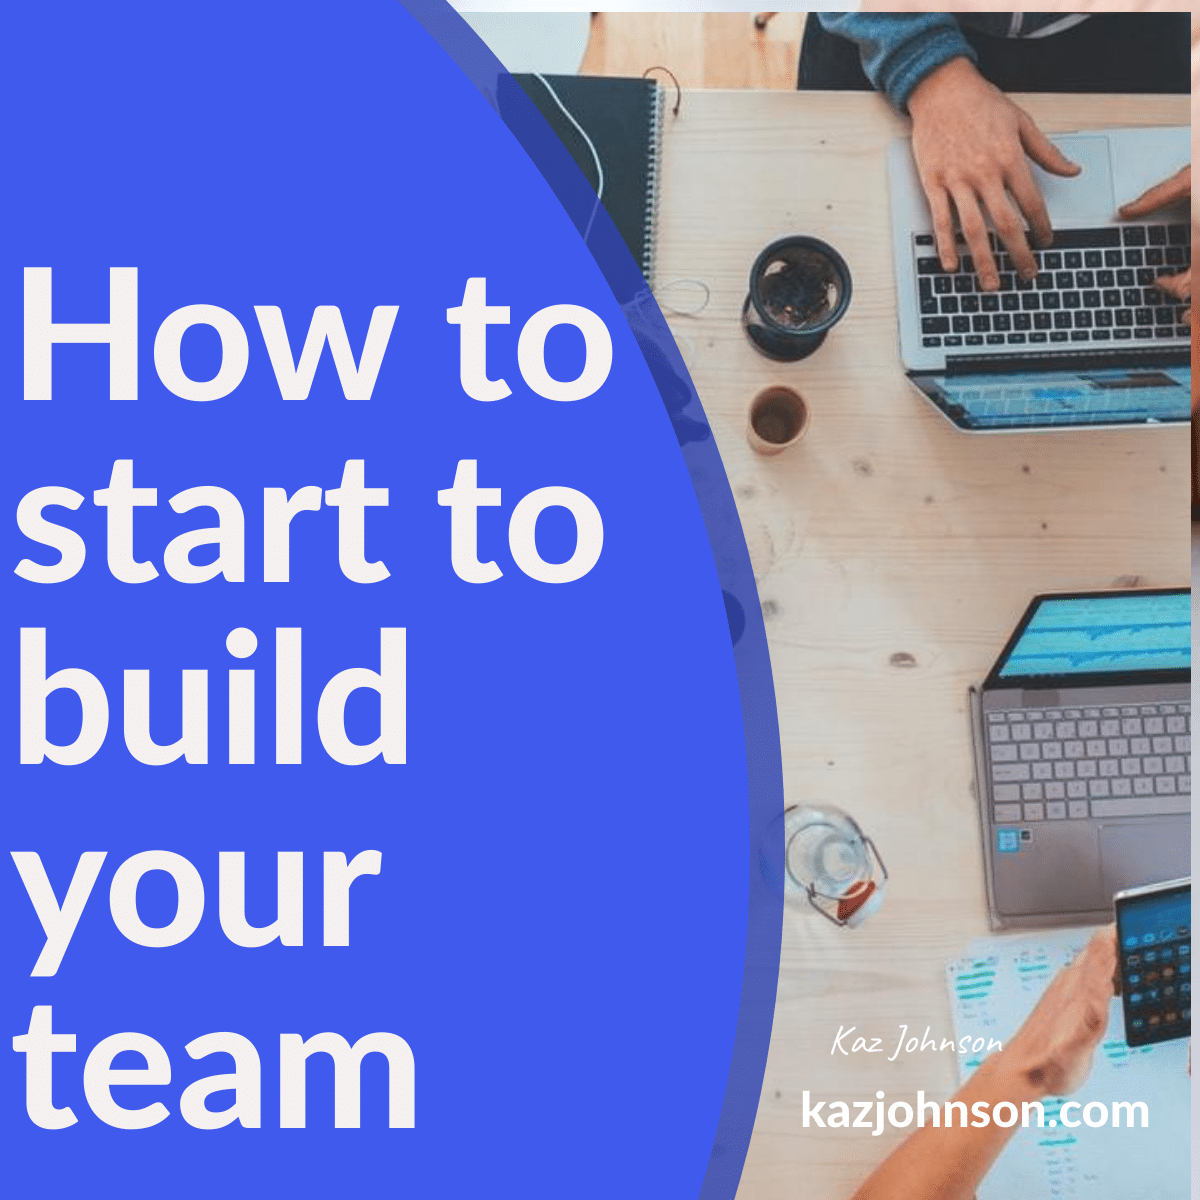 How to start to build your team